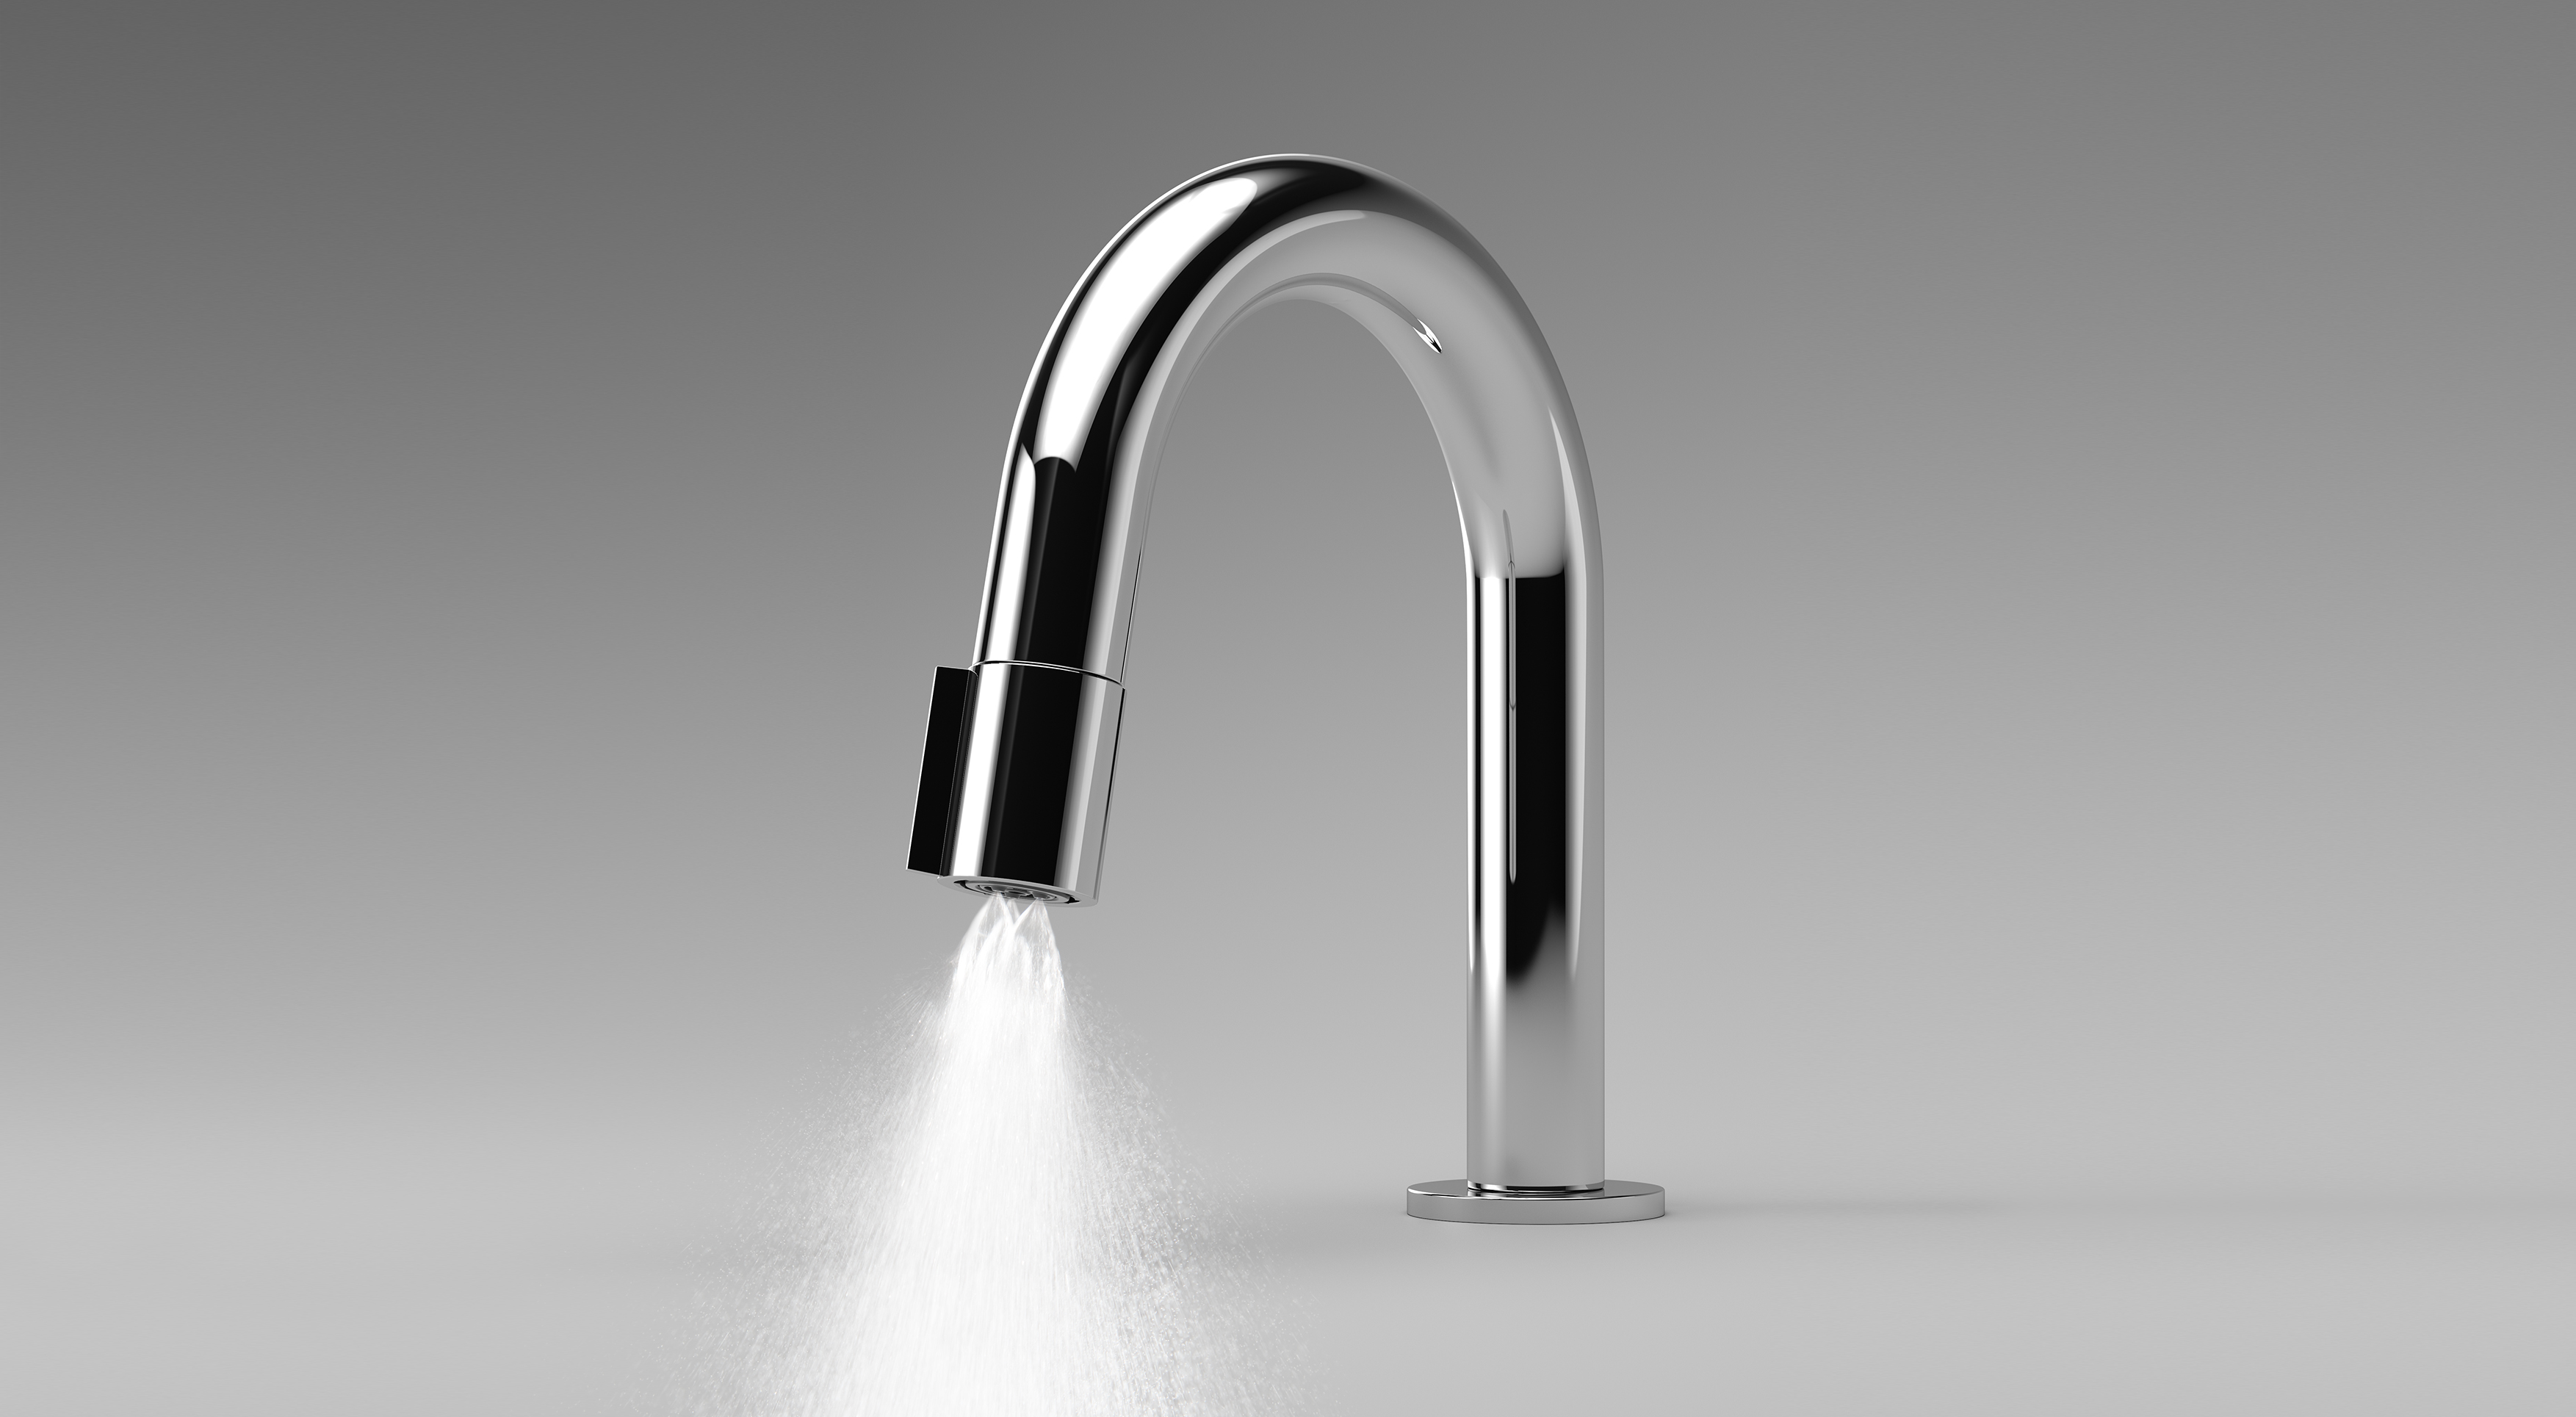 Swiss Eco Tap | Swiss Eco Line – save water, energy & resources